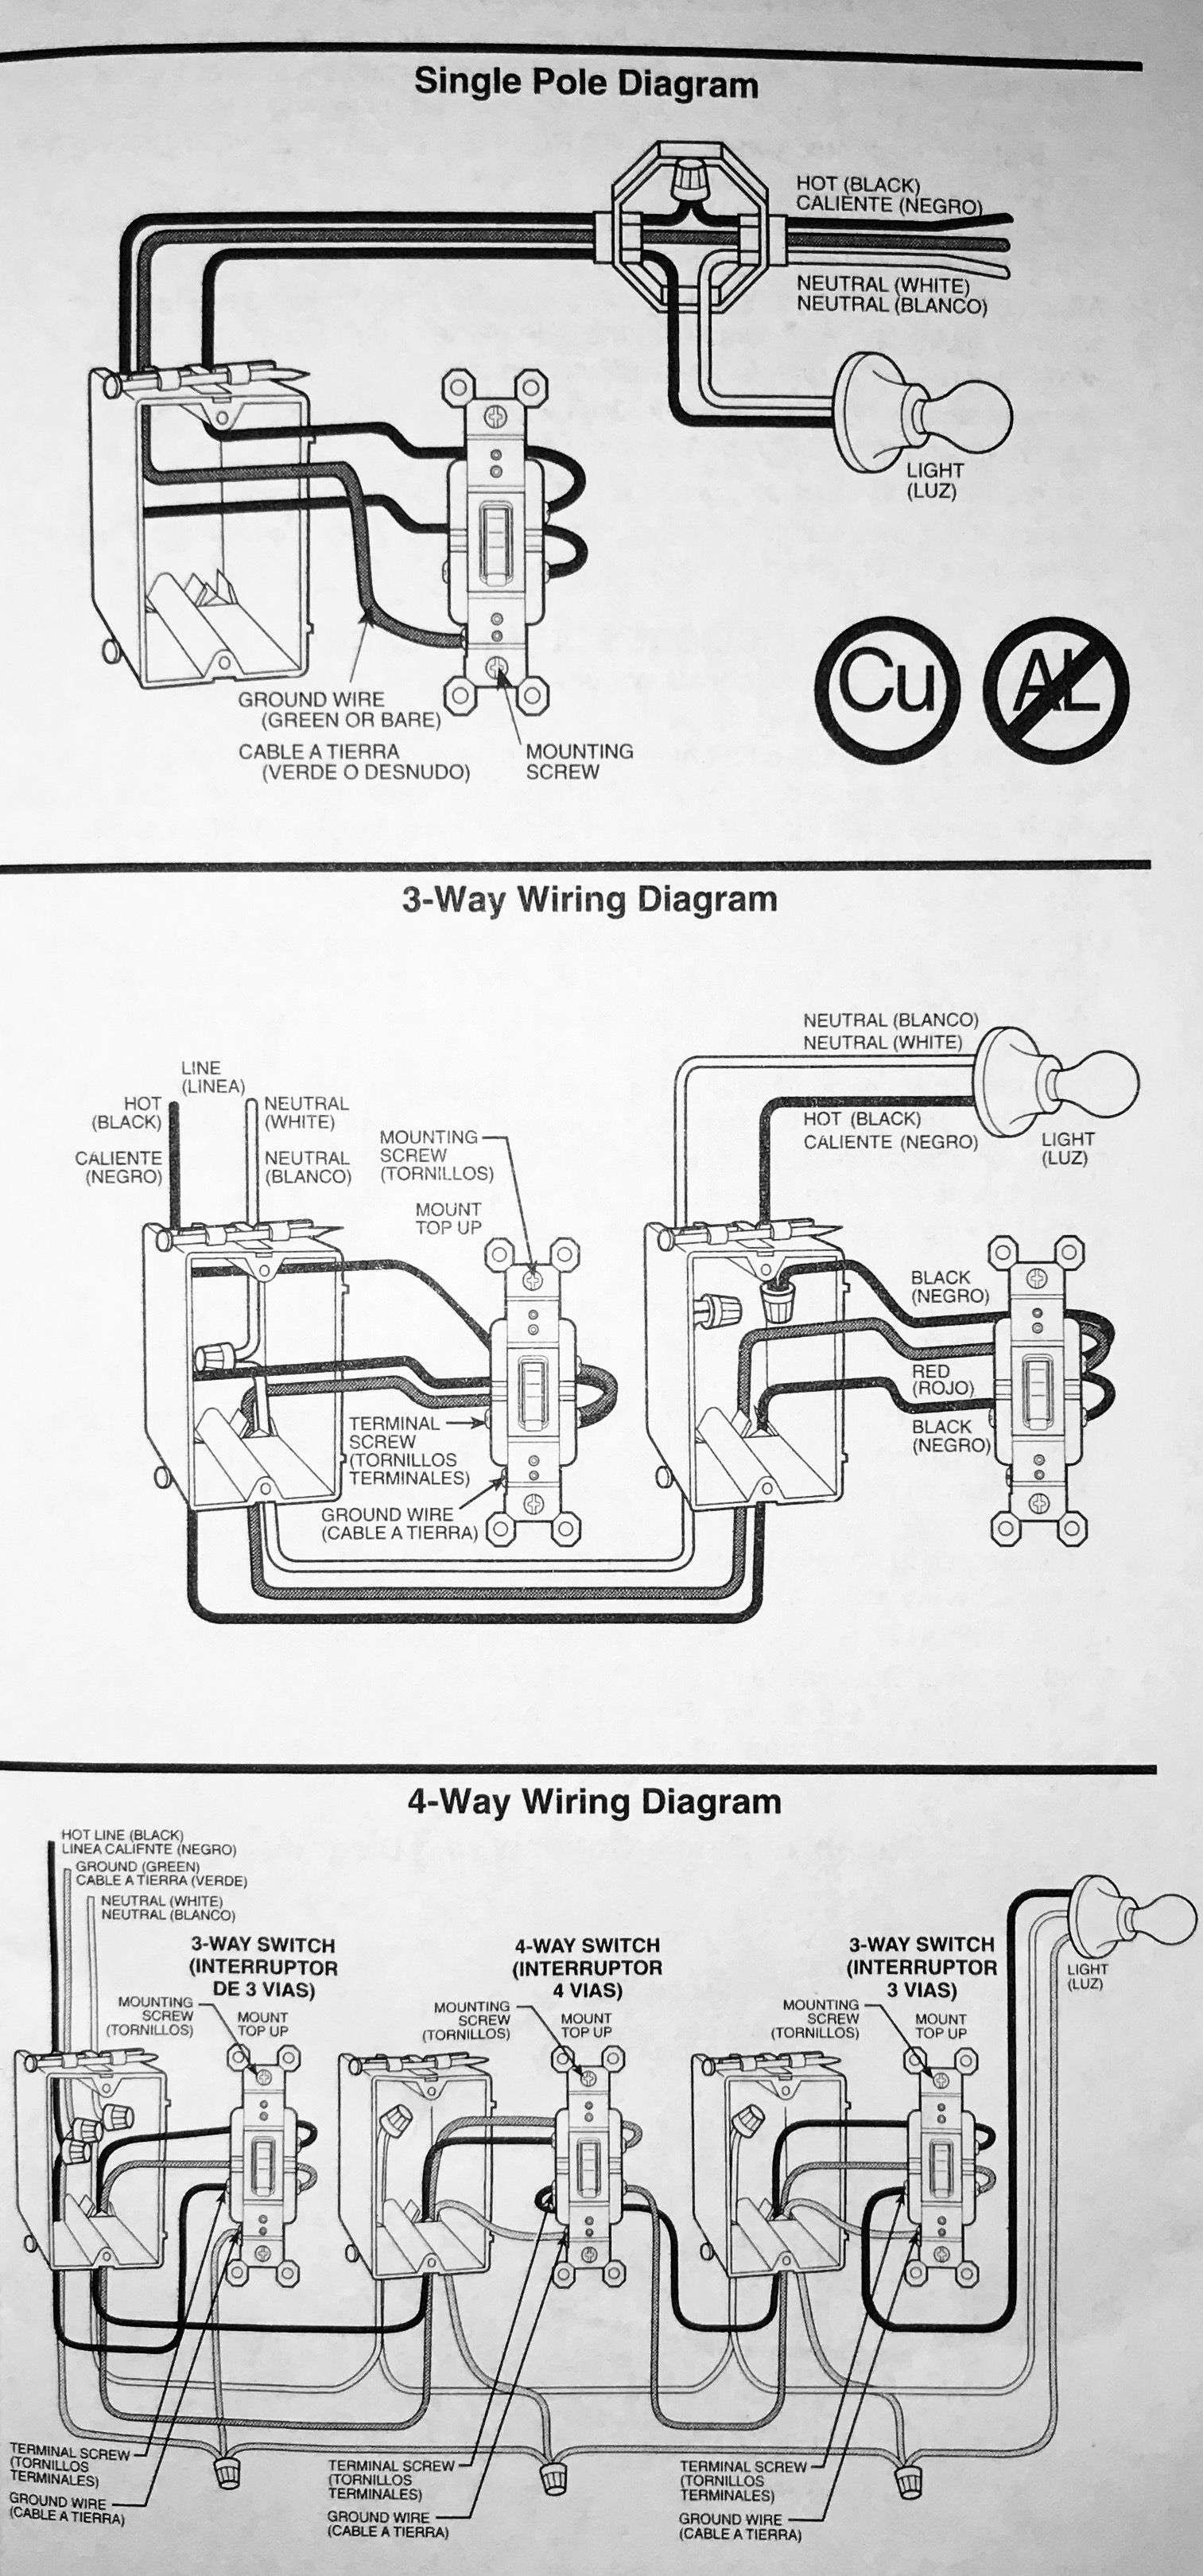 hight resolution of wiring diagram 3 way switch inspirational installation of single pole 3 way 4 way switches wiring